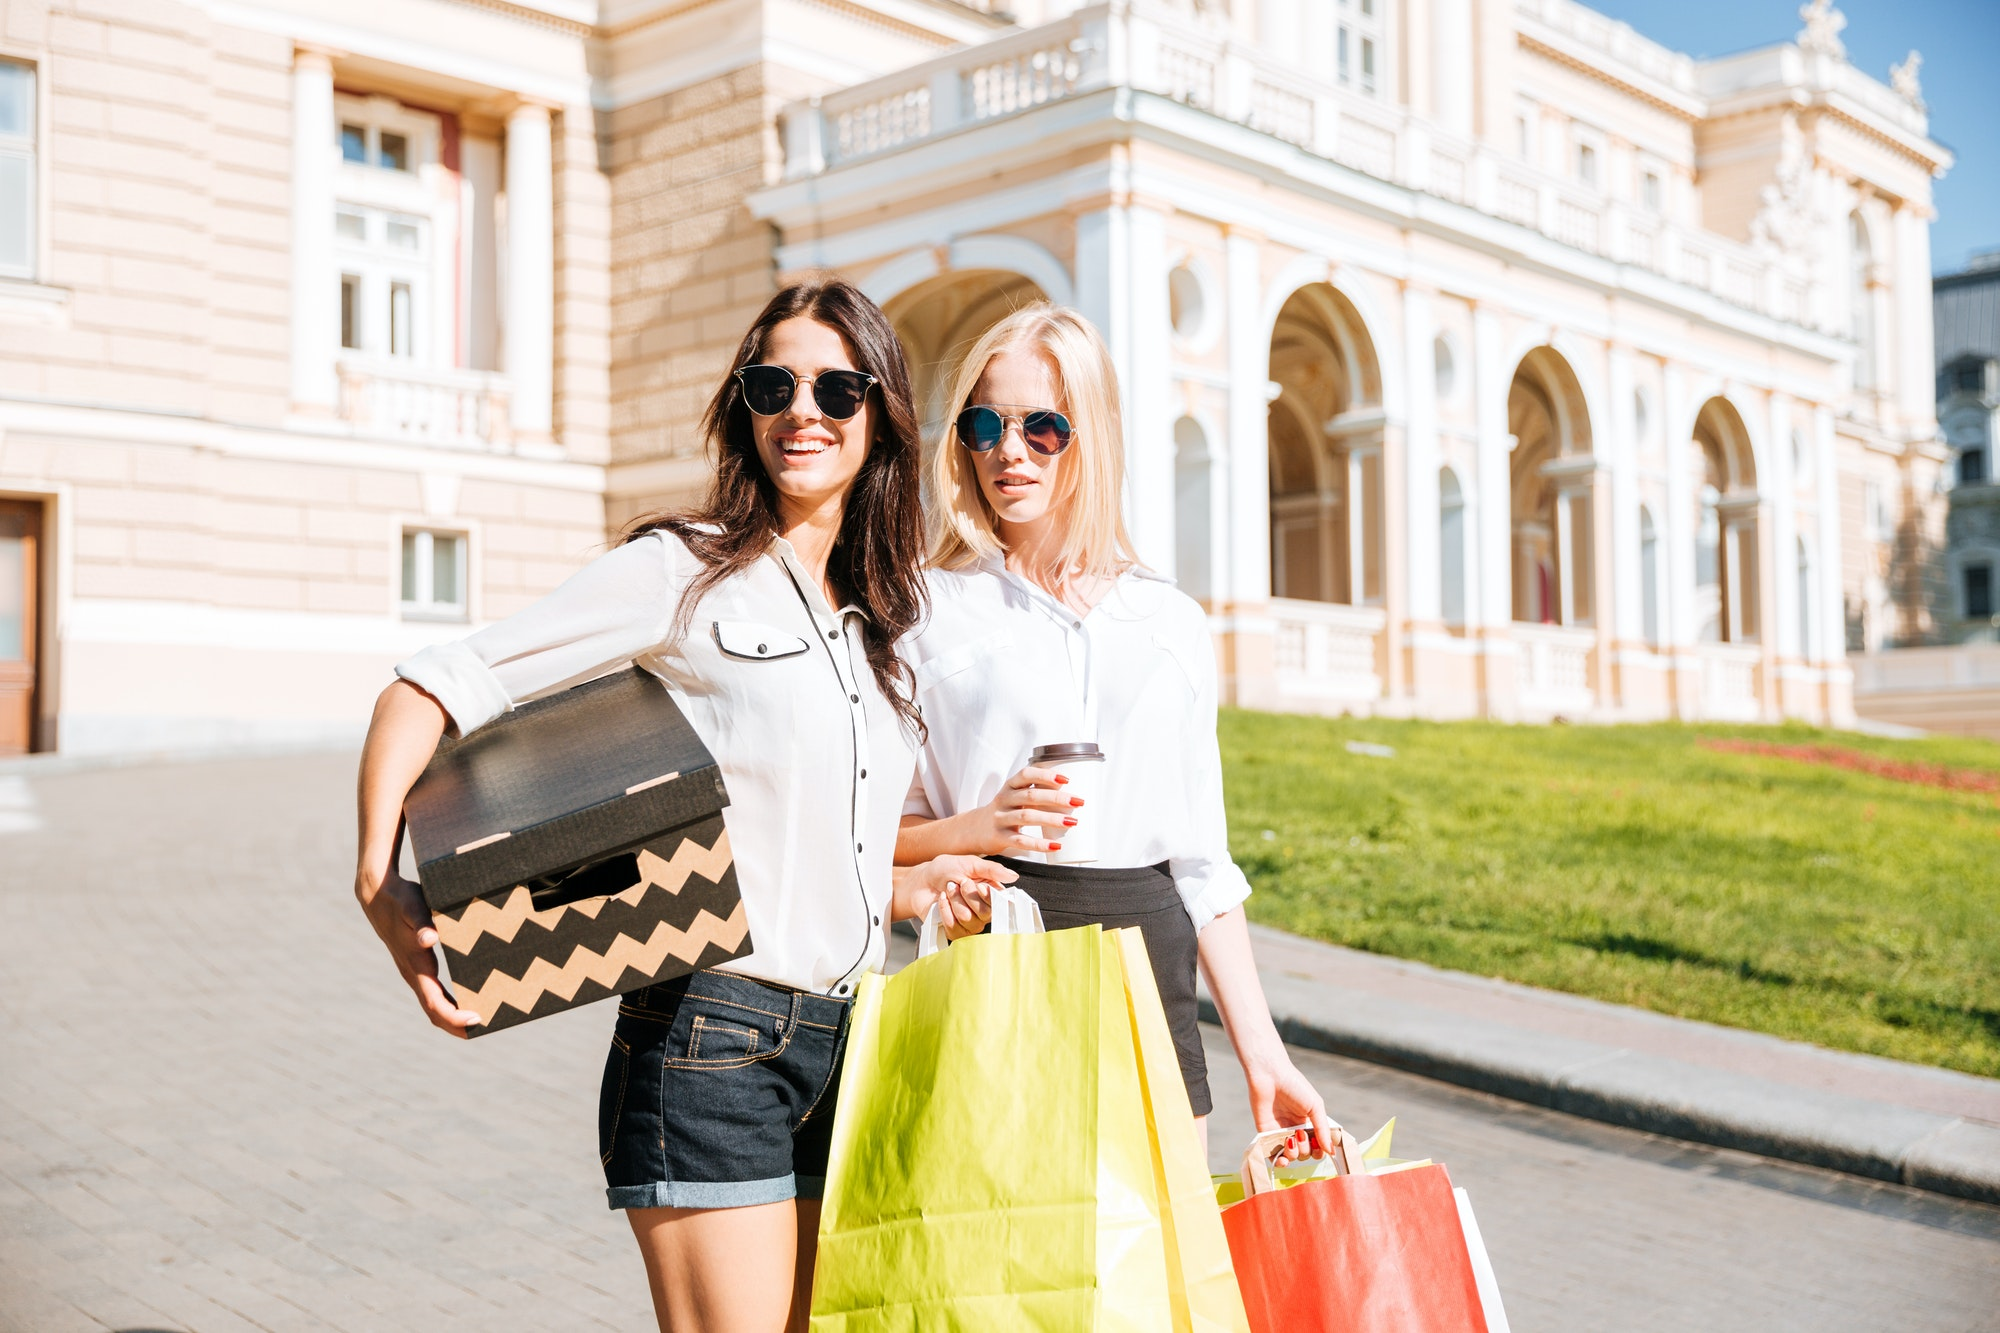 Two attractive girls standing with shopping bags on the street